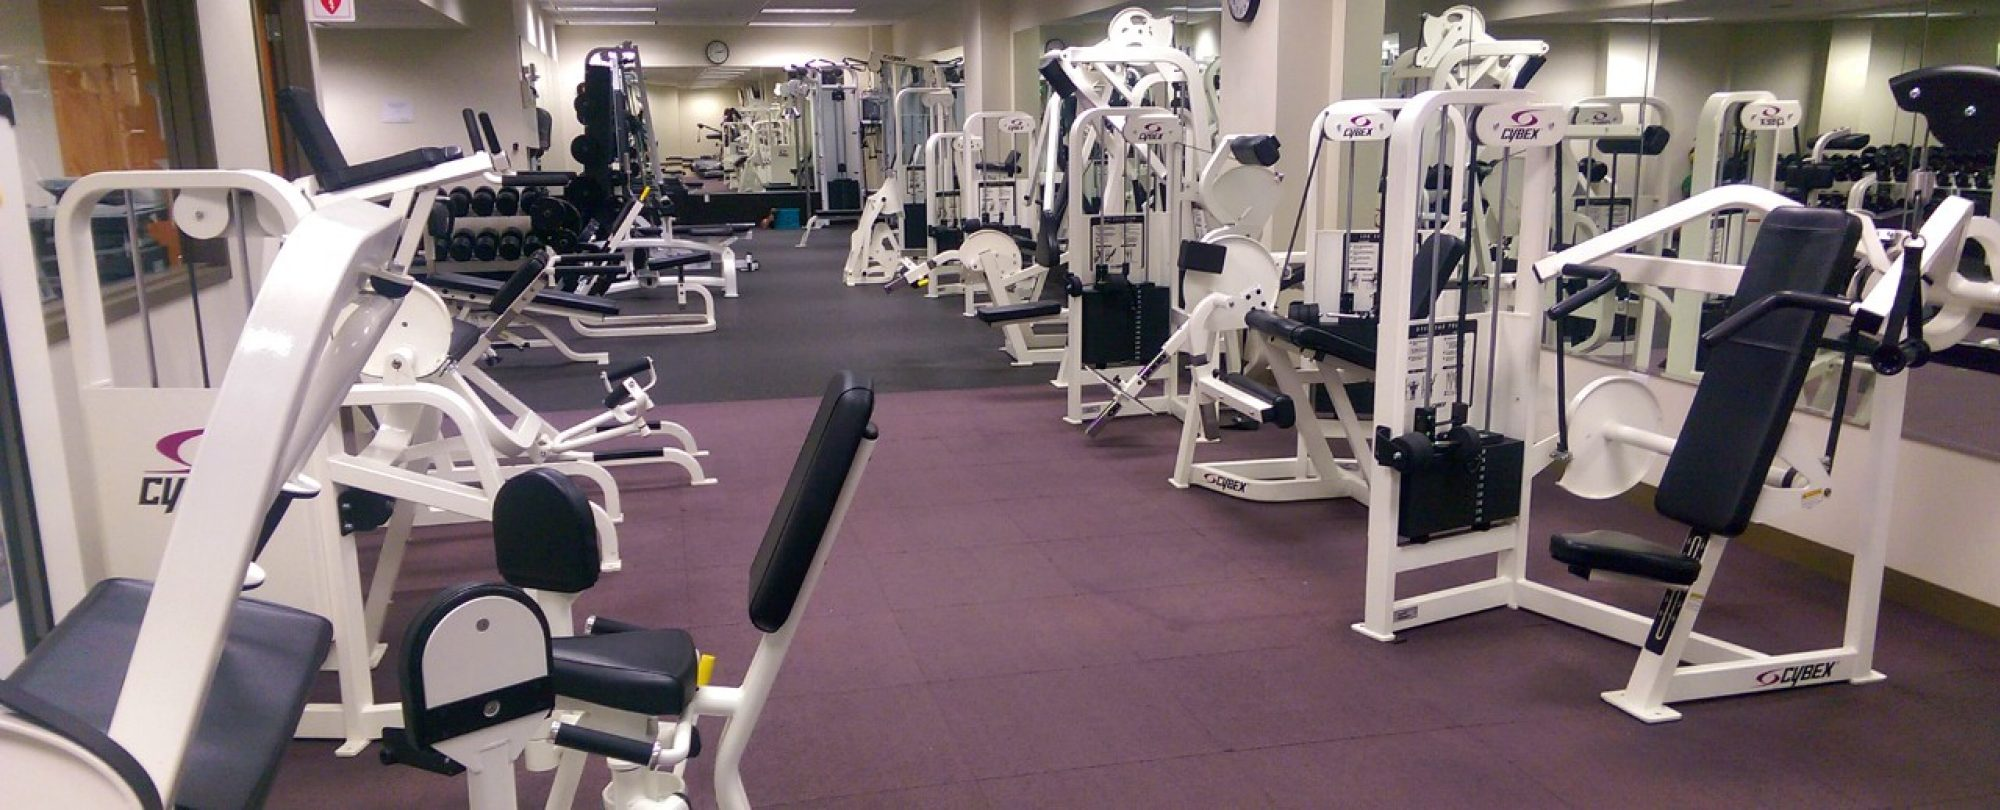 photo of leg press machines